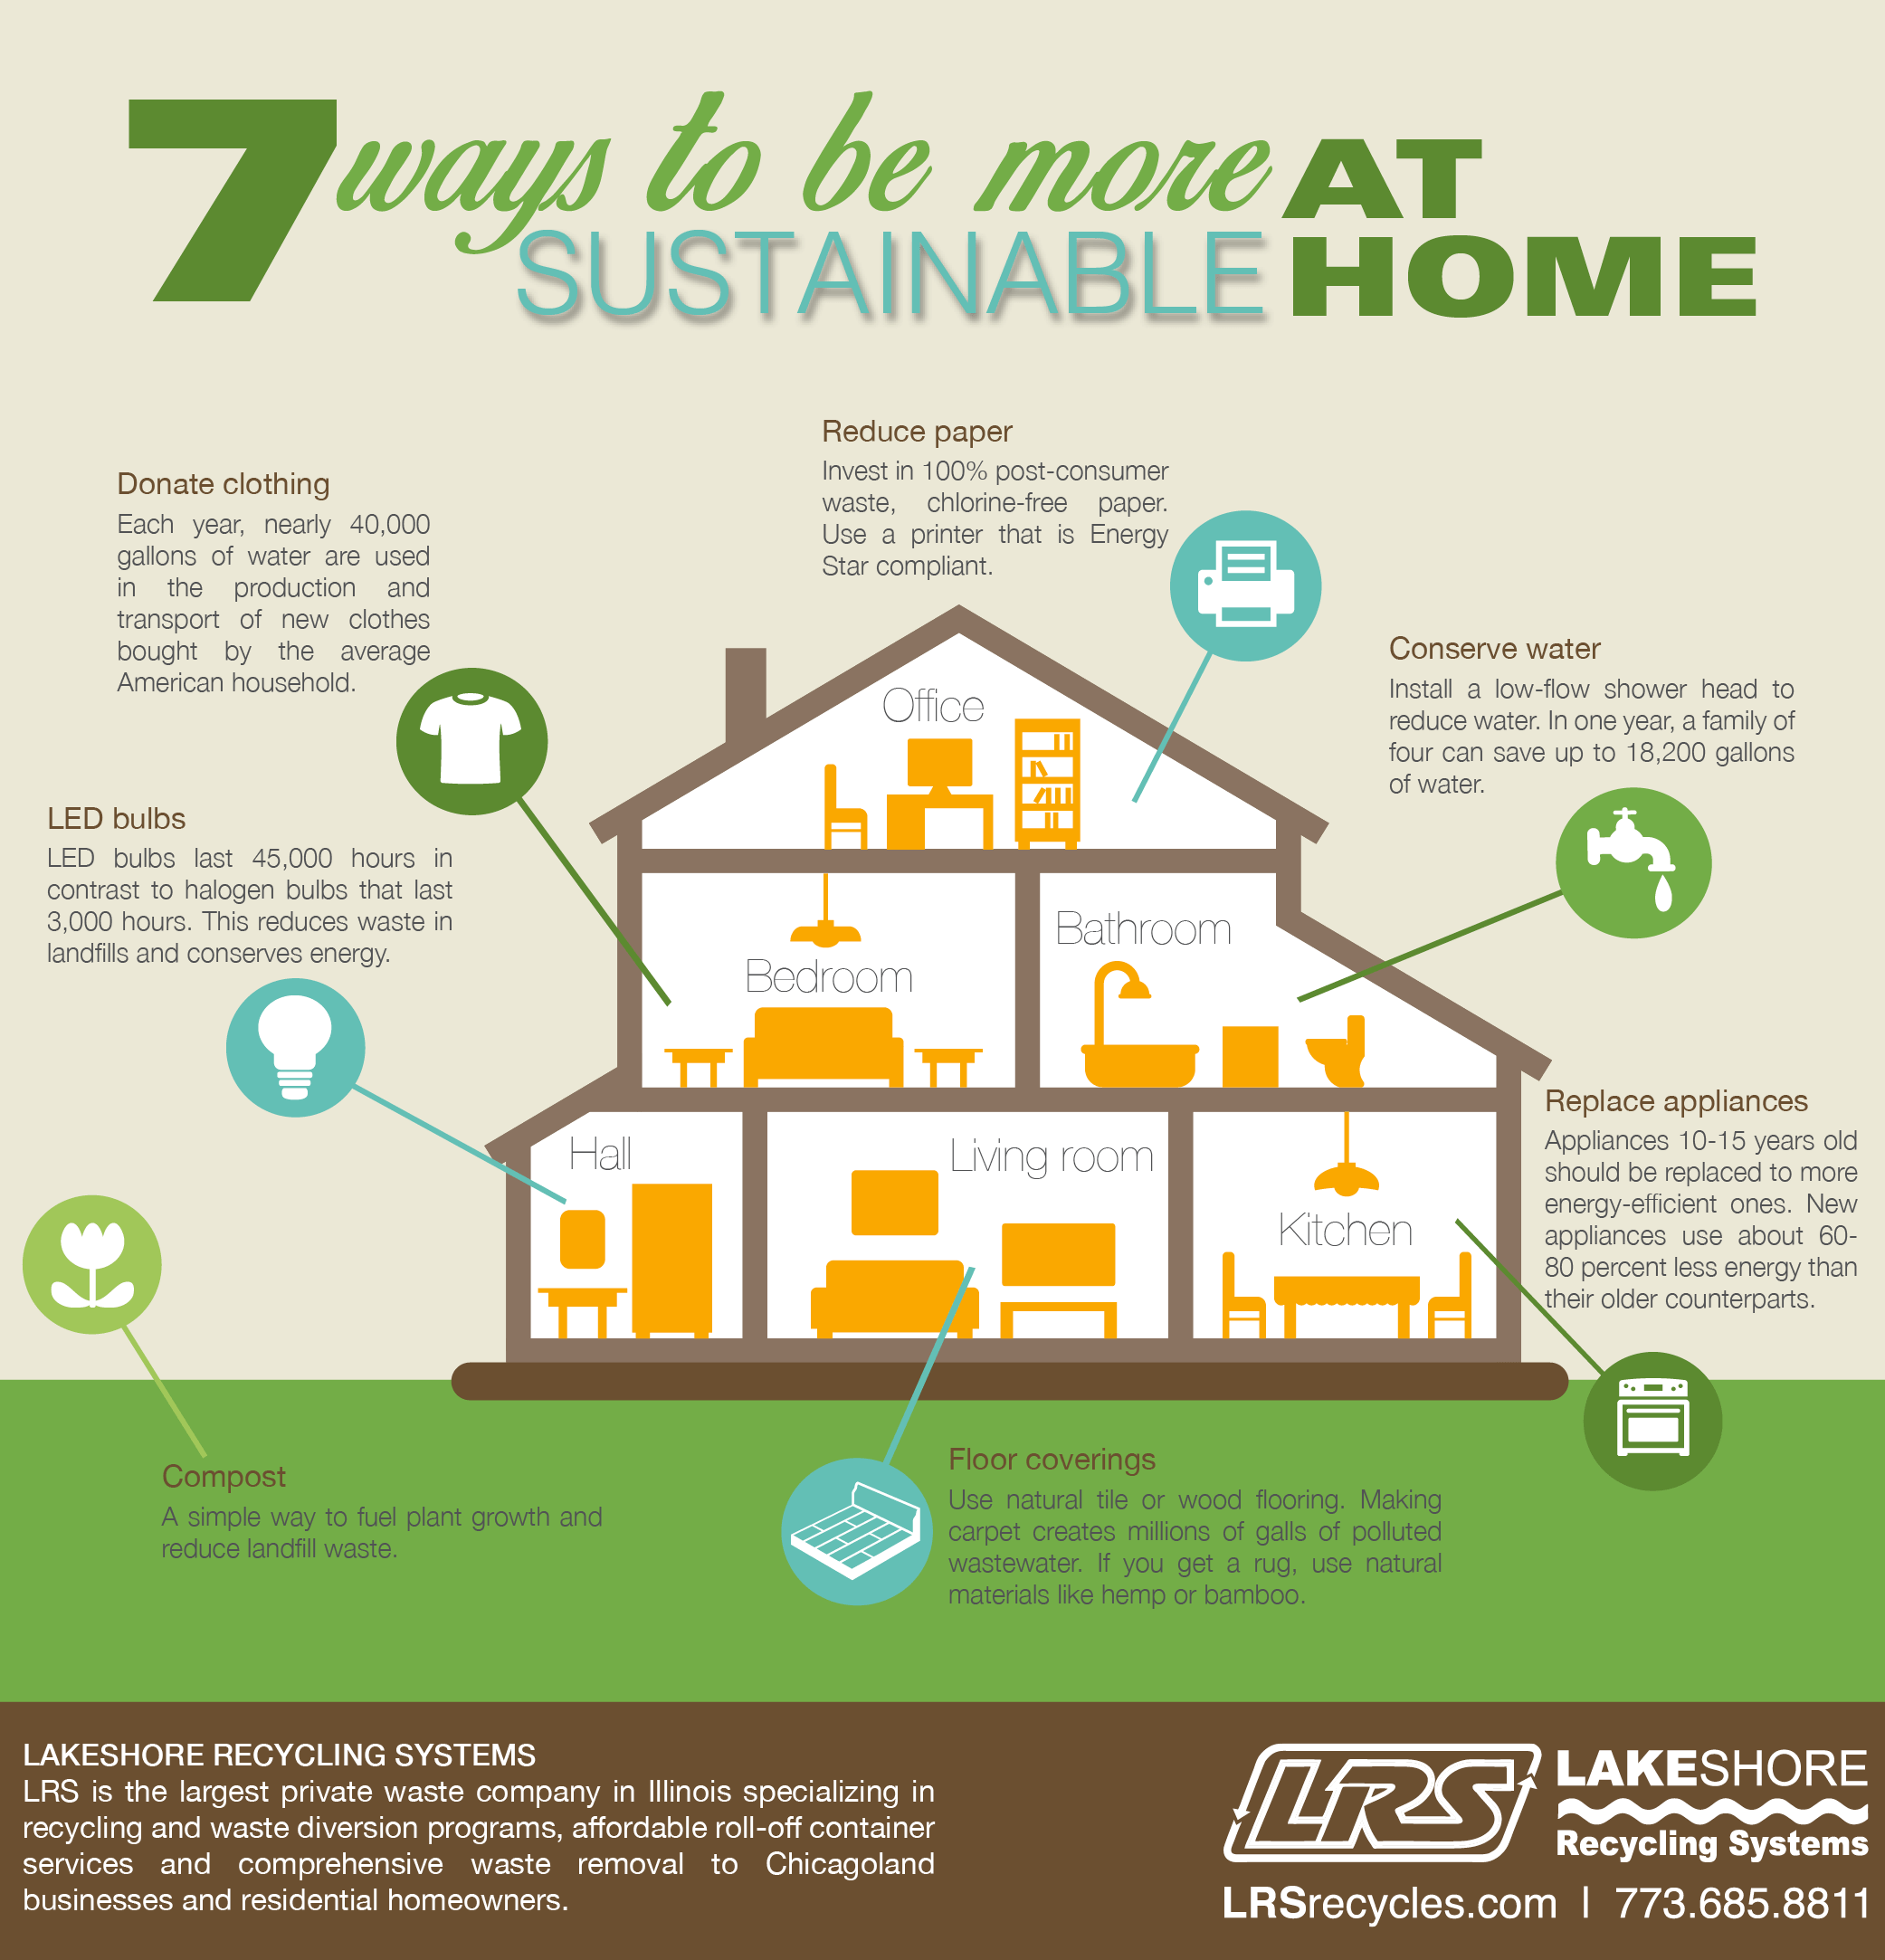 7 Simple Ways Your Family Can Live More Sustainably At